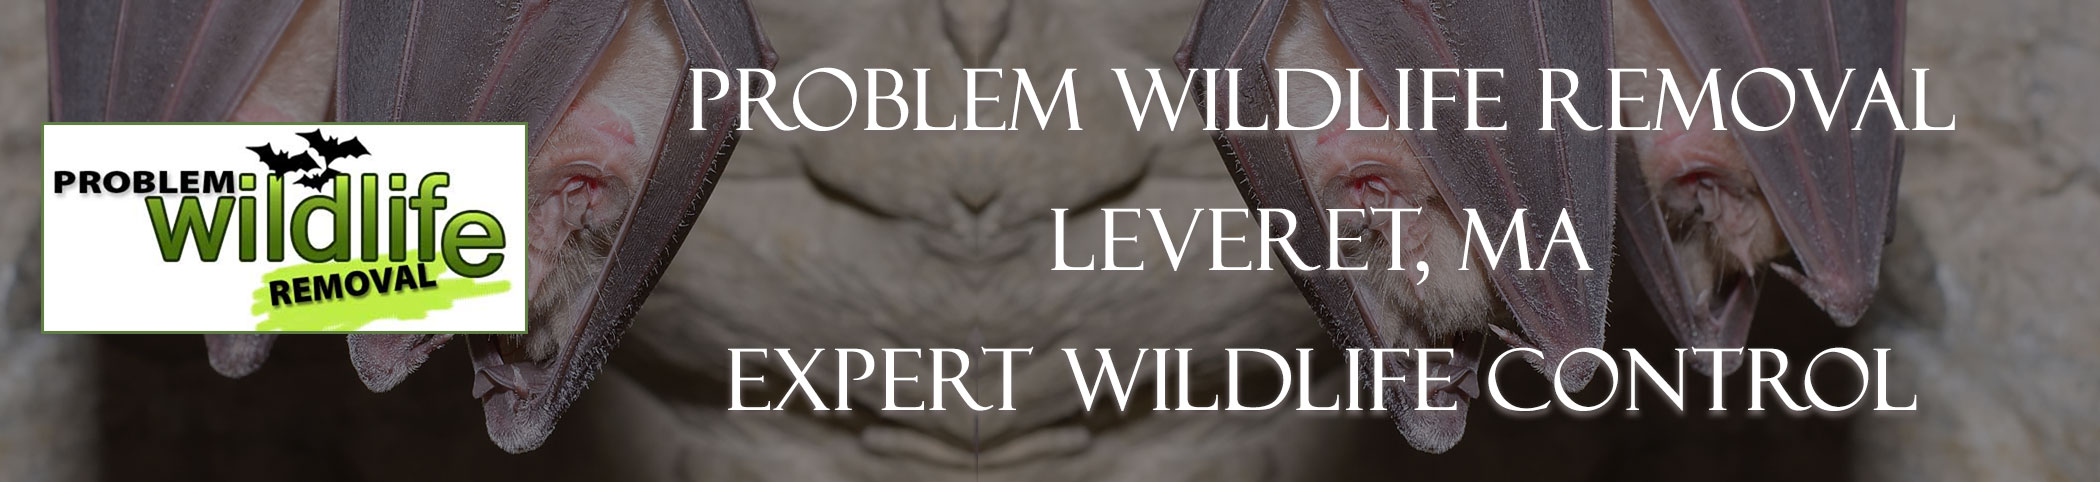 bat removal and bat exclusion by problem wildlife removal Leveret ma